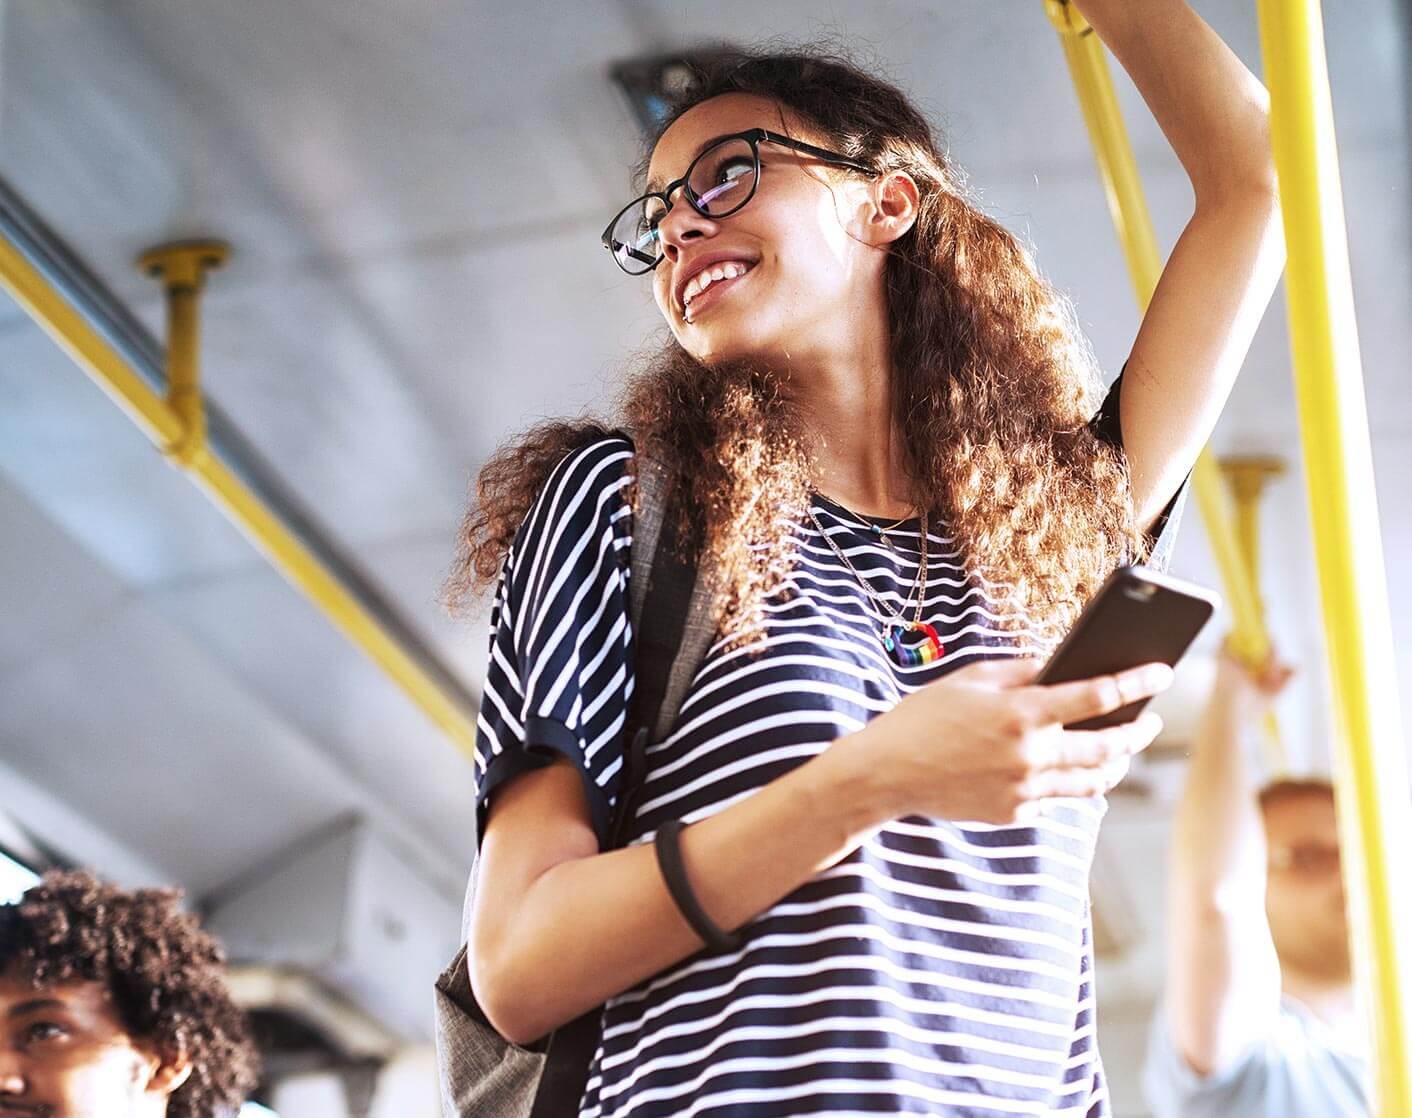 white woman standing on bus holding mobile phone looking over her shoulder away from camera